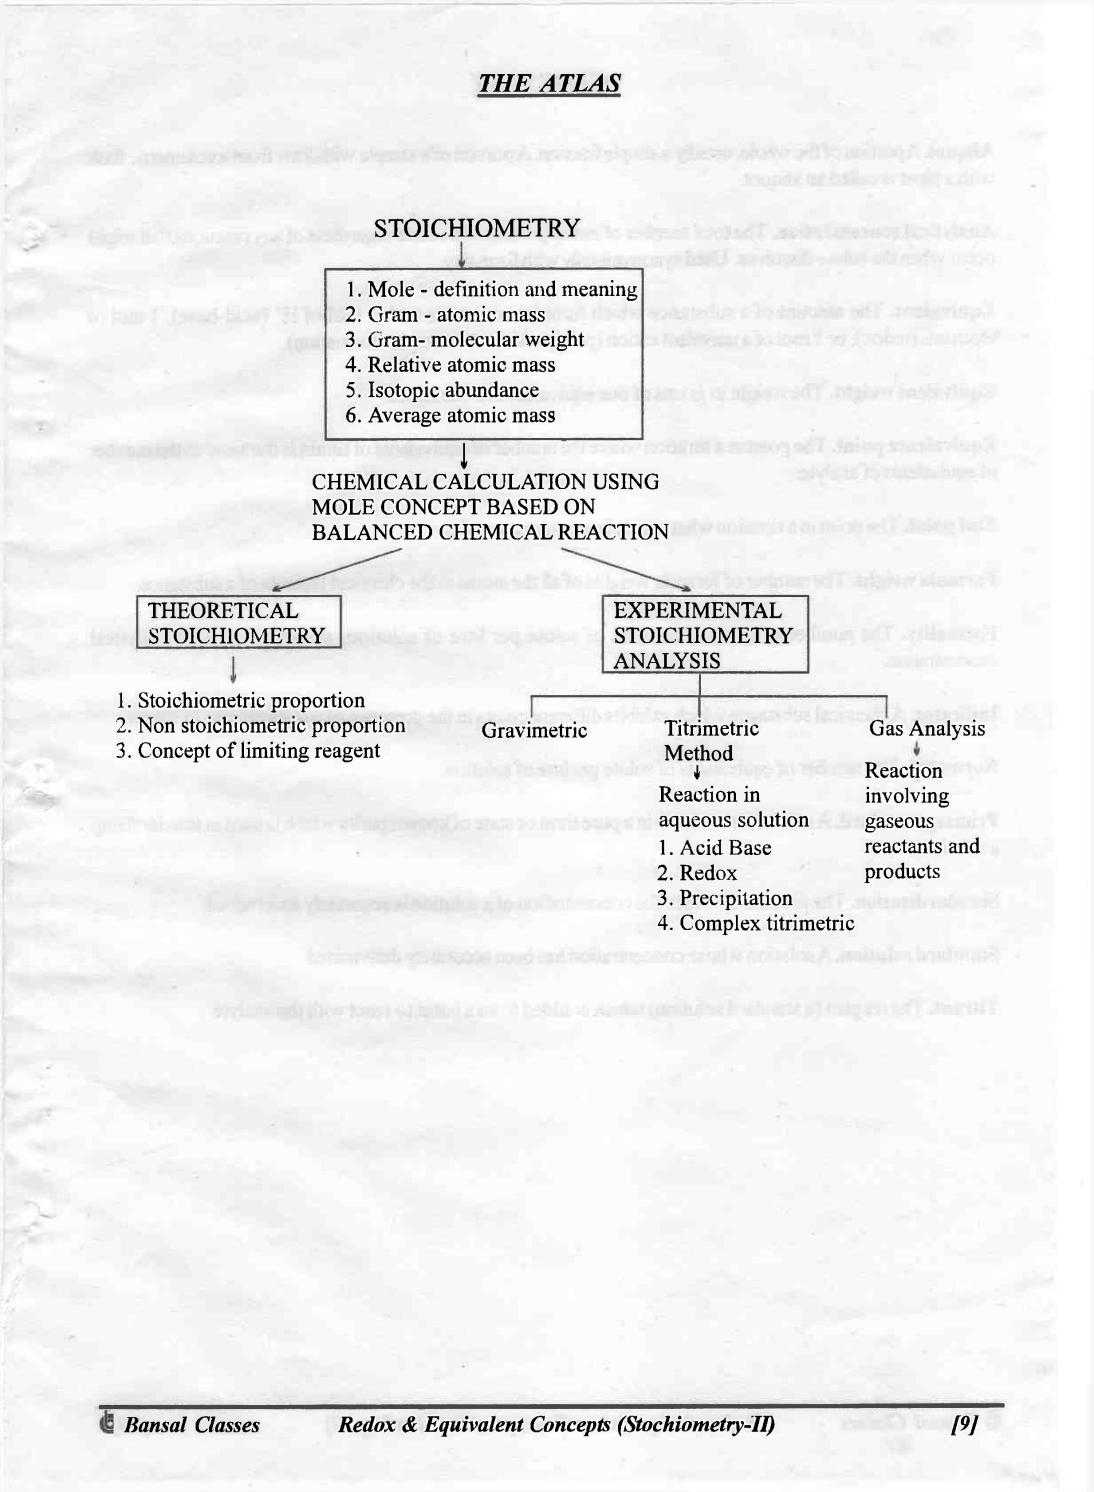 Bansal classes chemistry study material for iit jee by S Dharmaraj